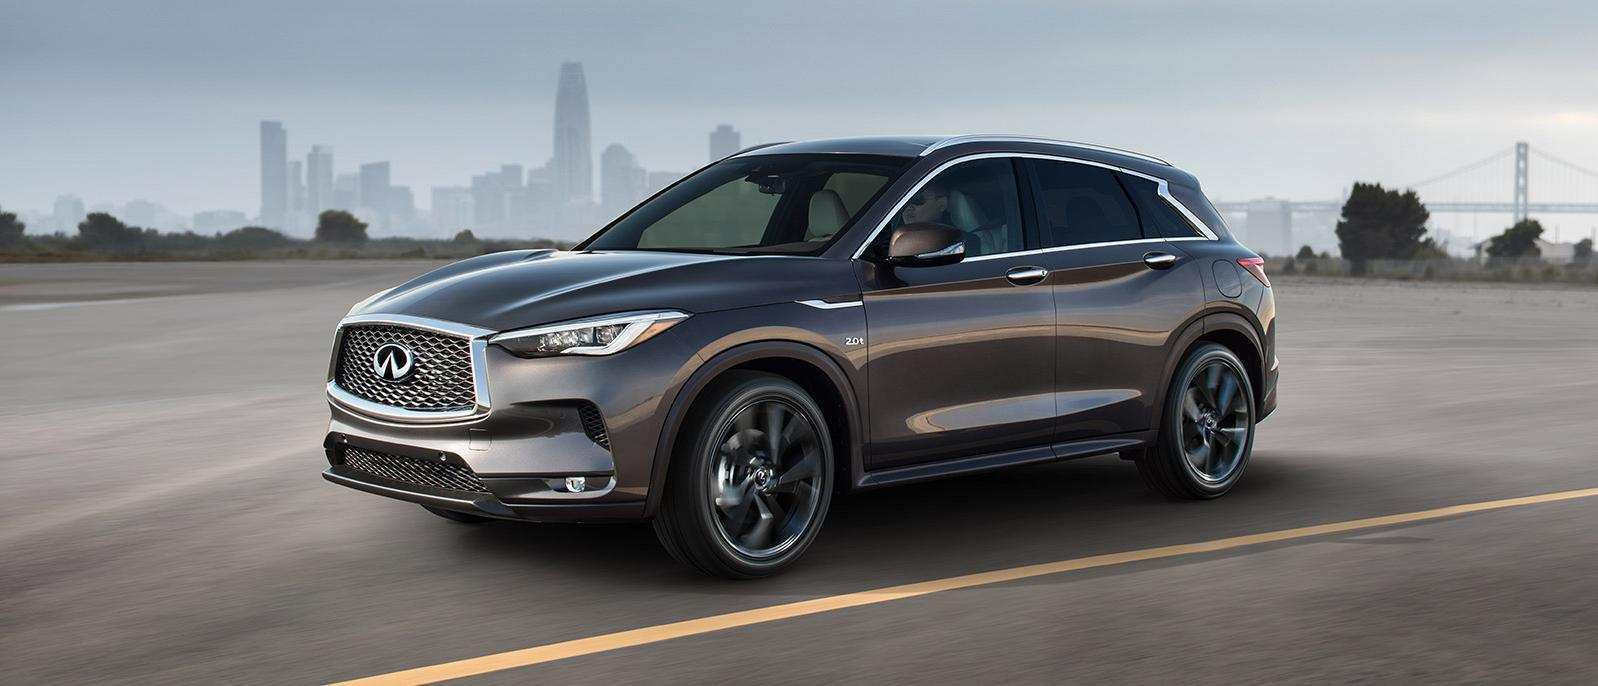 50 All New Infiniti Qx50 2019 Images Overview And Price Exterior by Infiniti Qx50 2019 Images Overview And Price